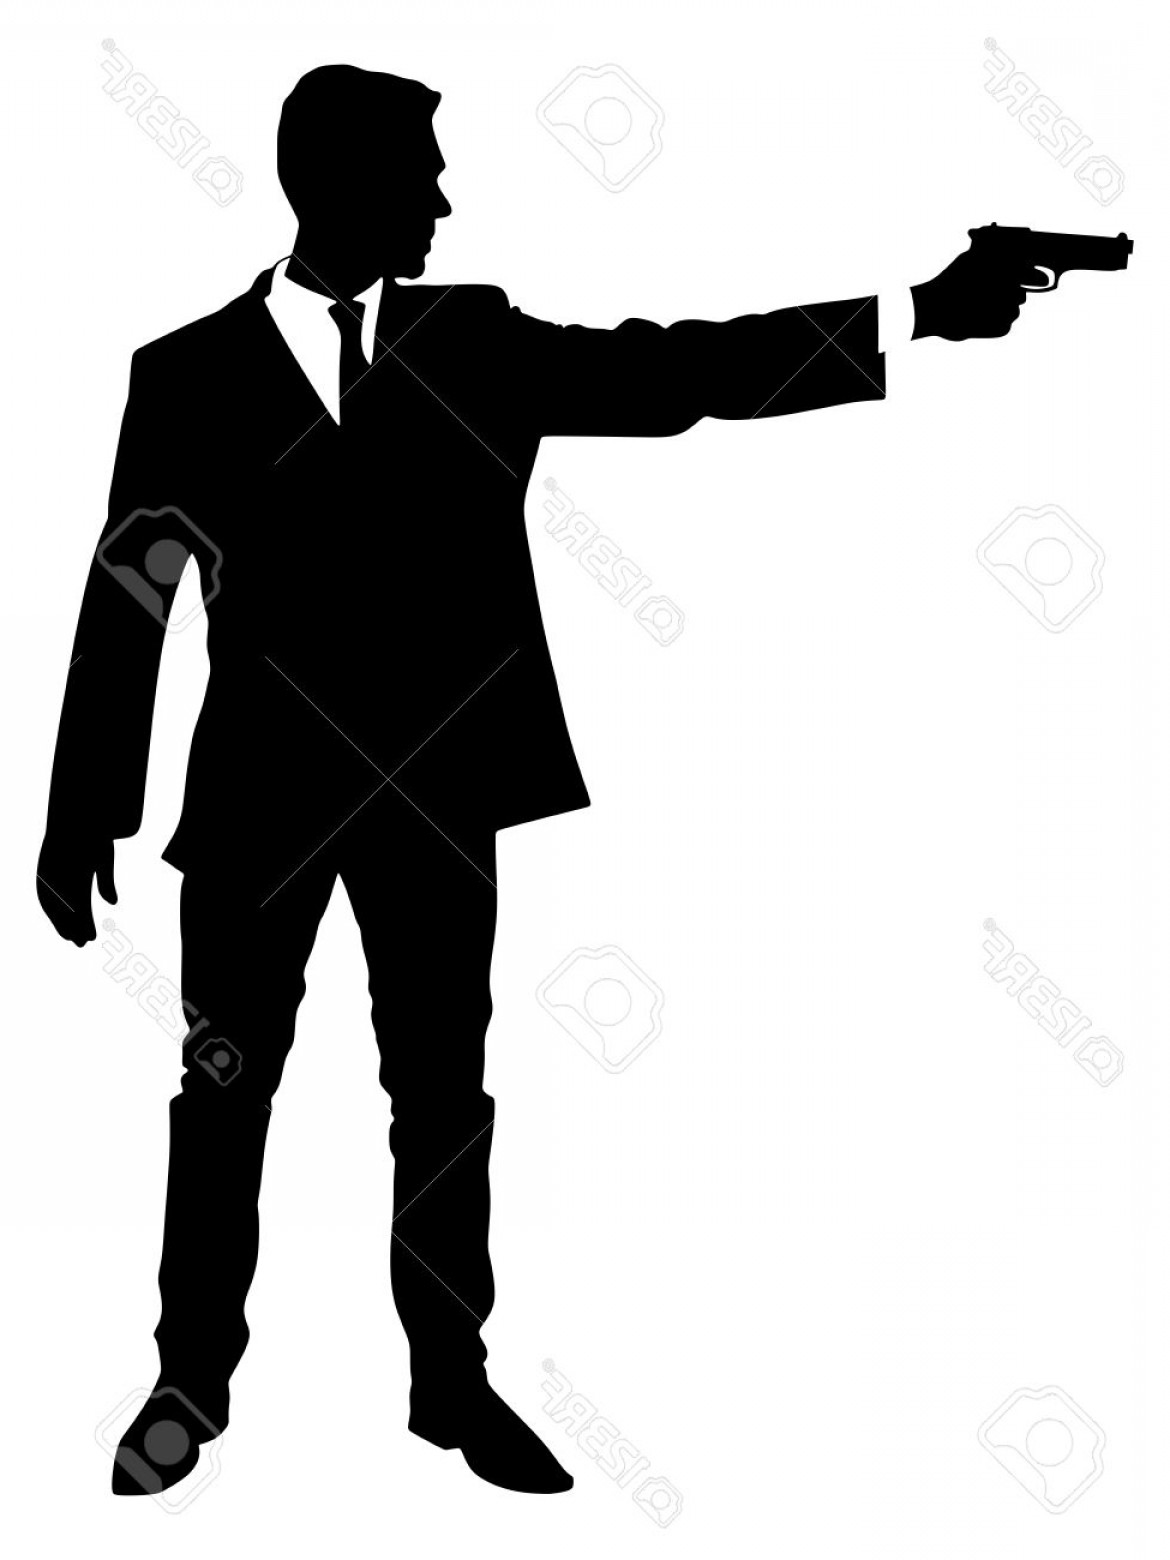 James Bond Silhouette Vector: Photostock Vector Man Shooting Gun Vector